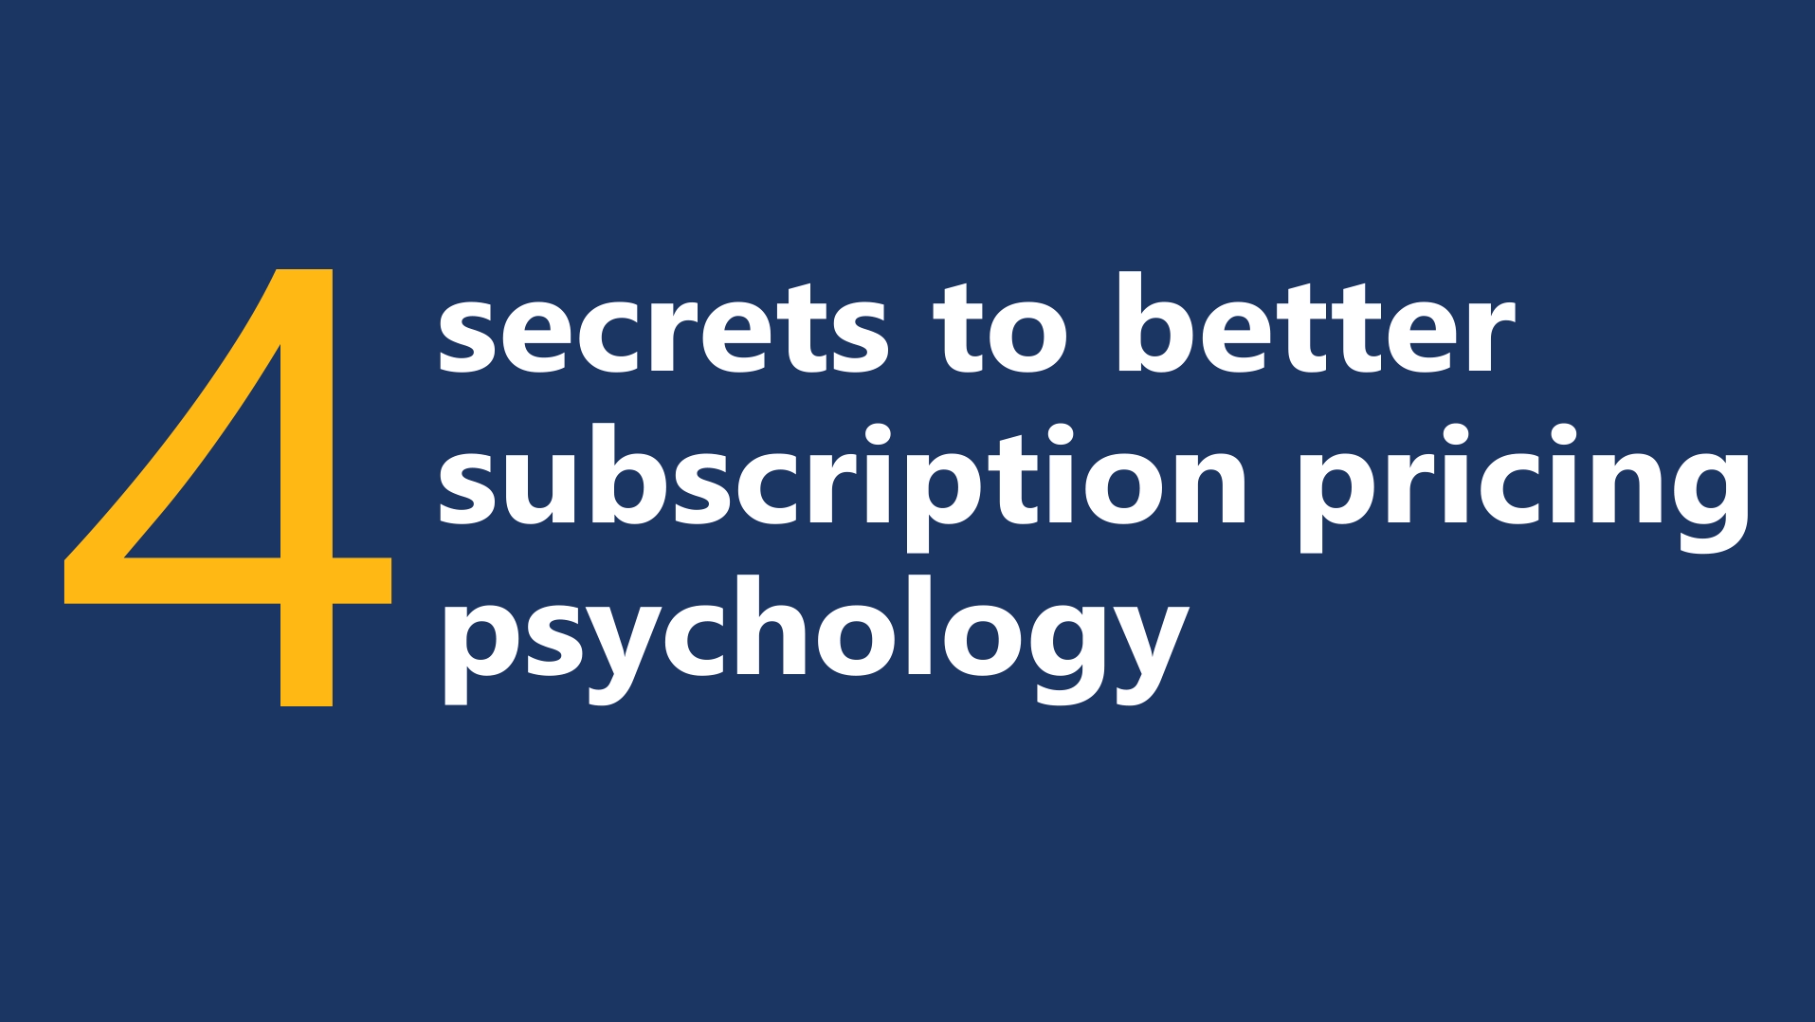 4 secrets to better subscription pricing psychology ...